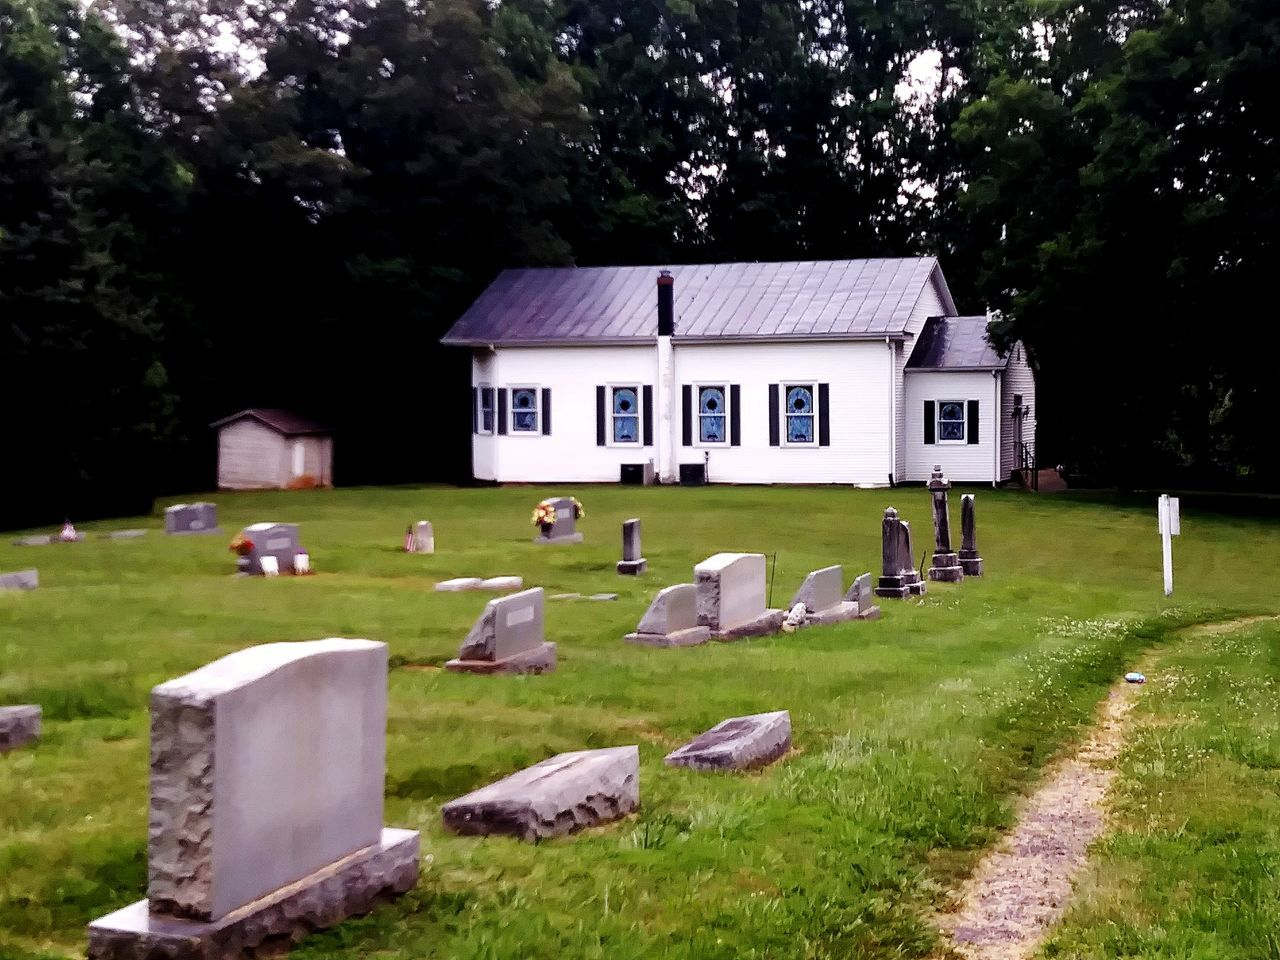 Grass No People Built Structure Tree Memorial Outdoors Architecture Day Nature Baptist Church Church Grave Cemetery Memorial Place Of Heart Architecture Grass